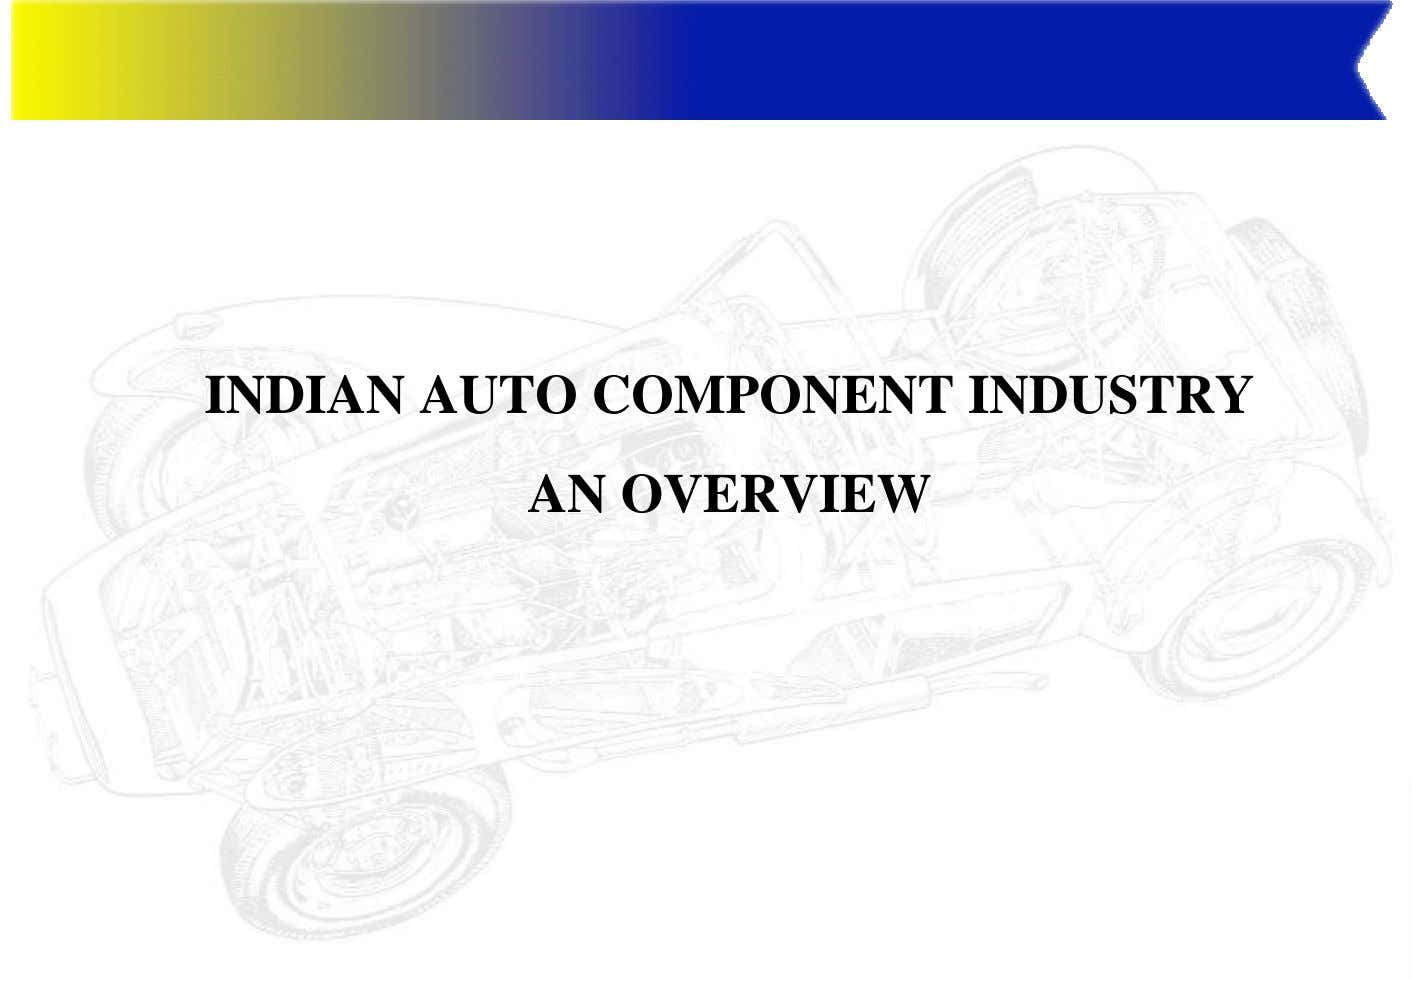 INDIAN AUTO COMPONENT INDUSTRY AN OVERVIEW